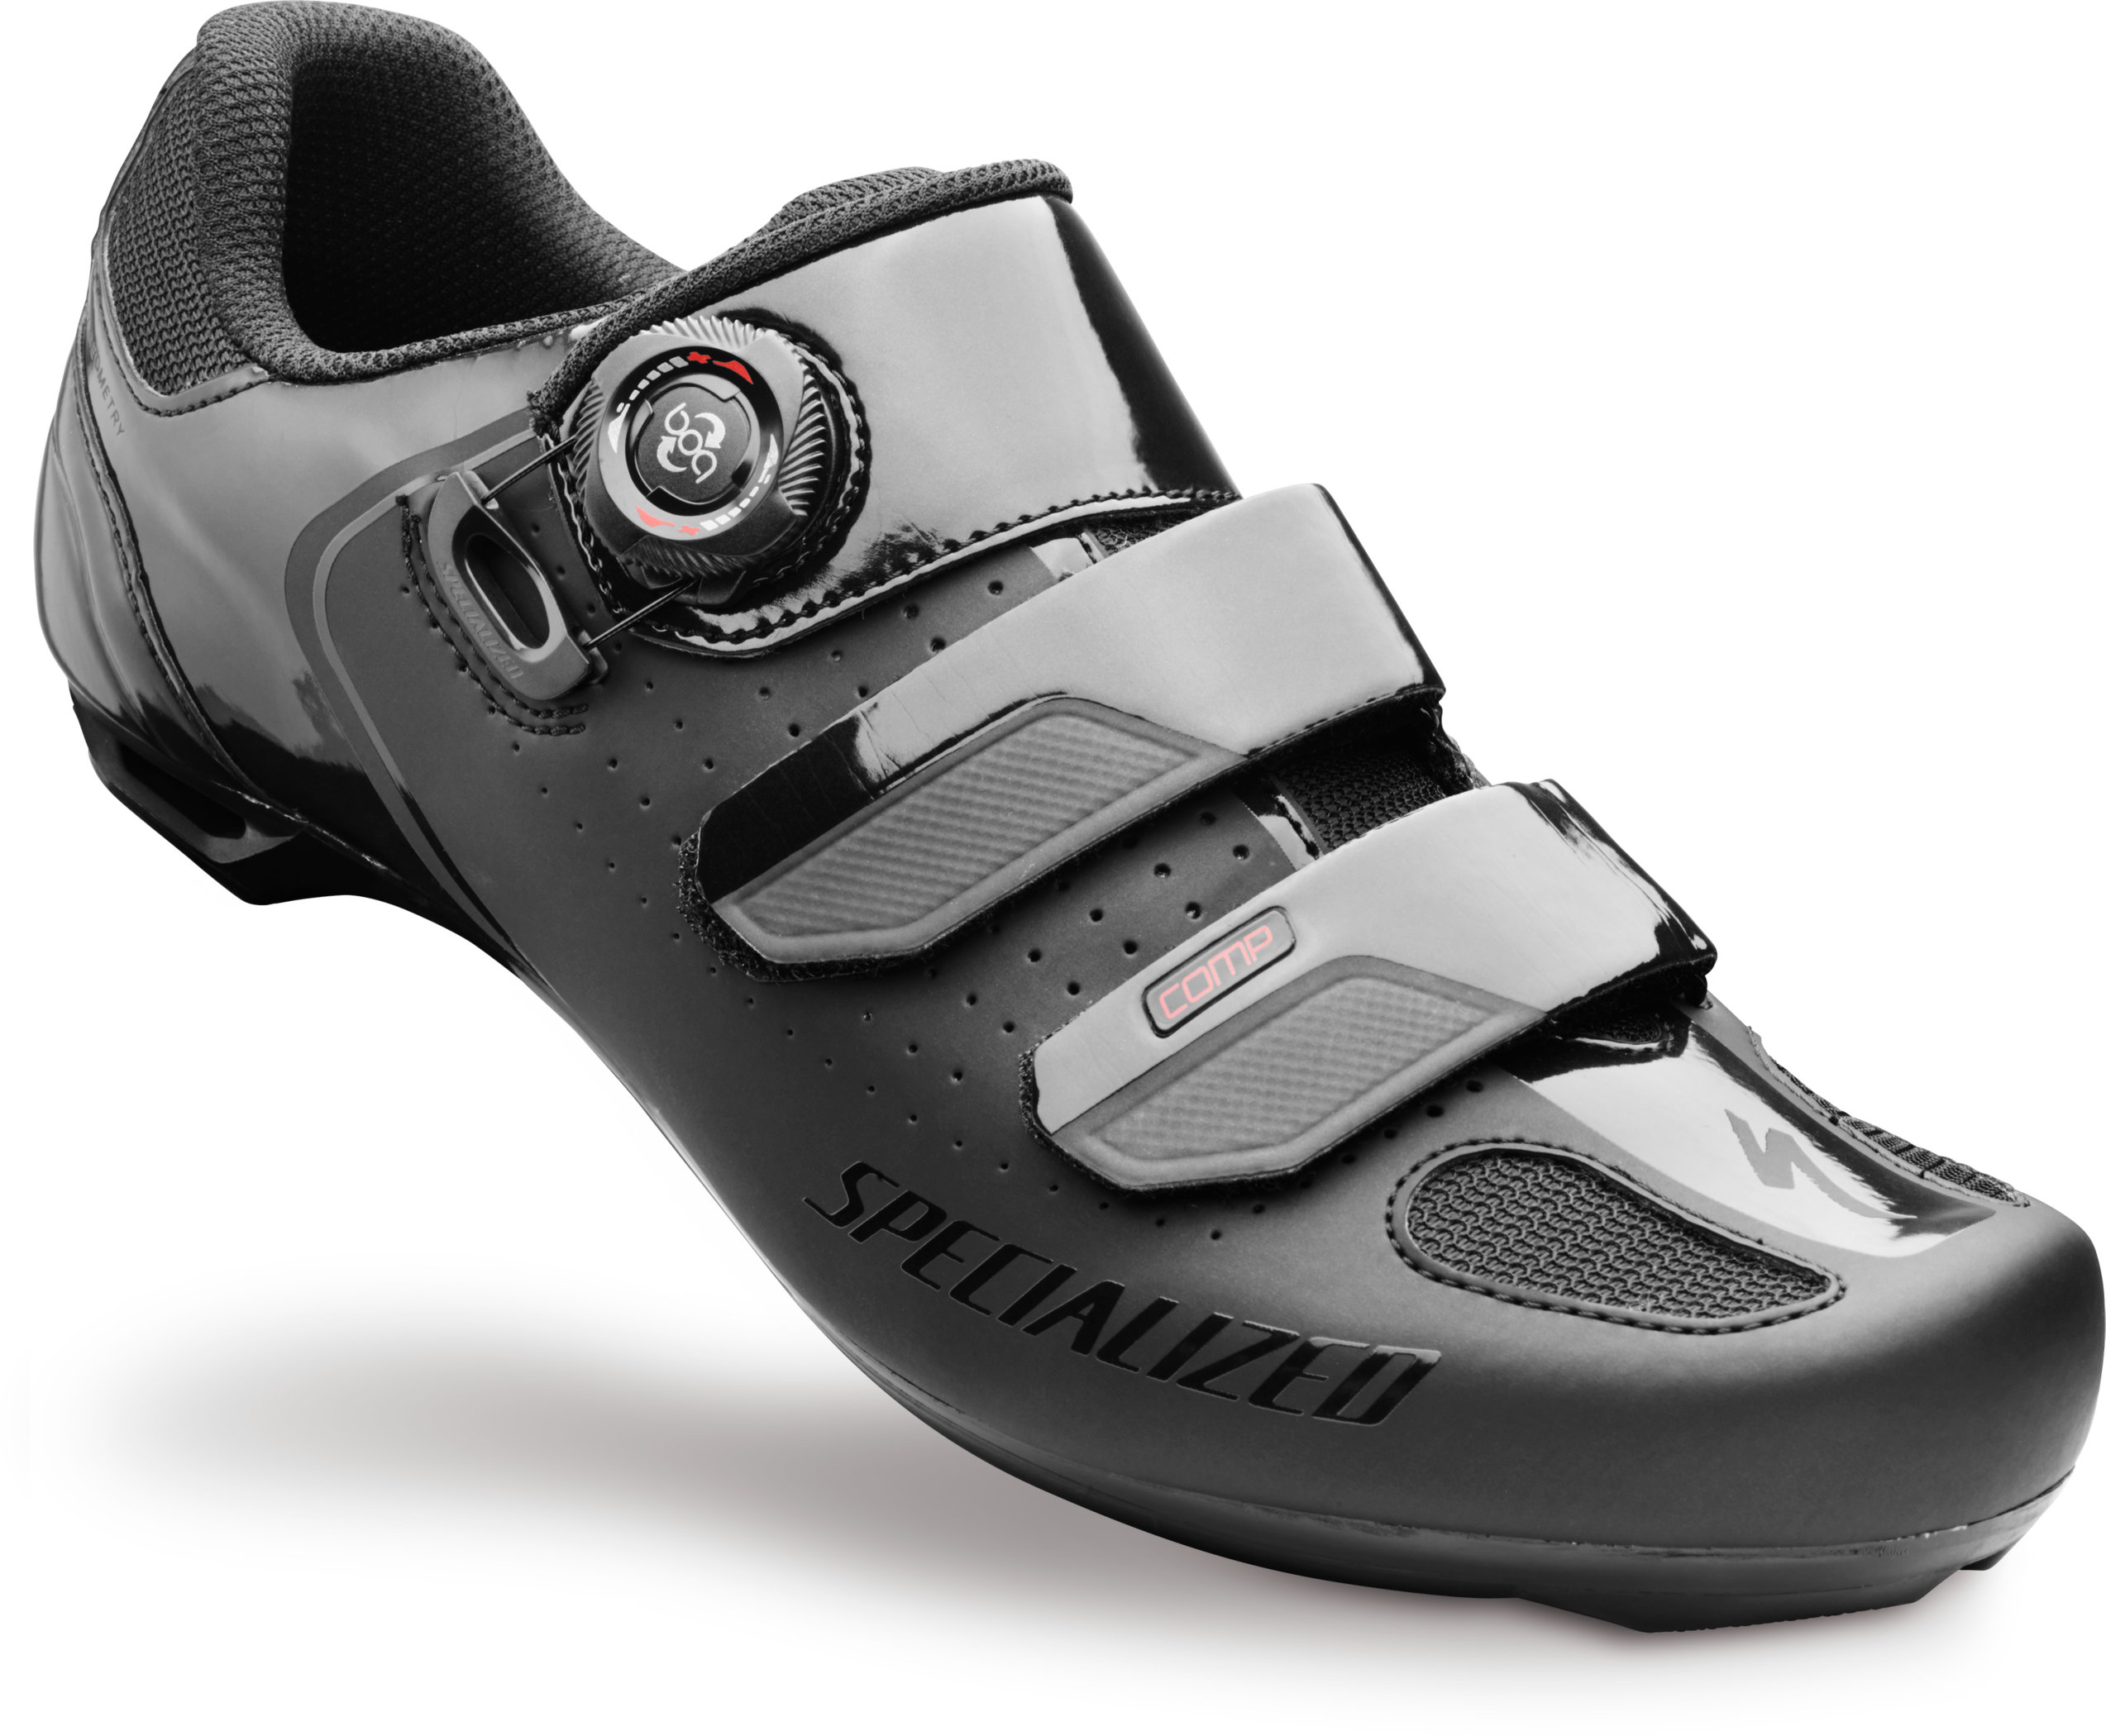 SPECIALIZED COMP RD SHOE BLK 38/5.75 - Bikedreams & Dustbikes